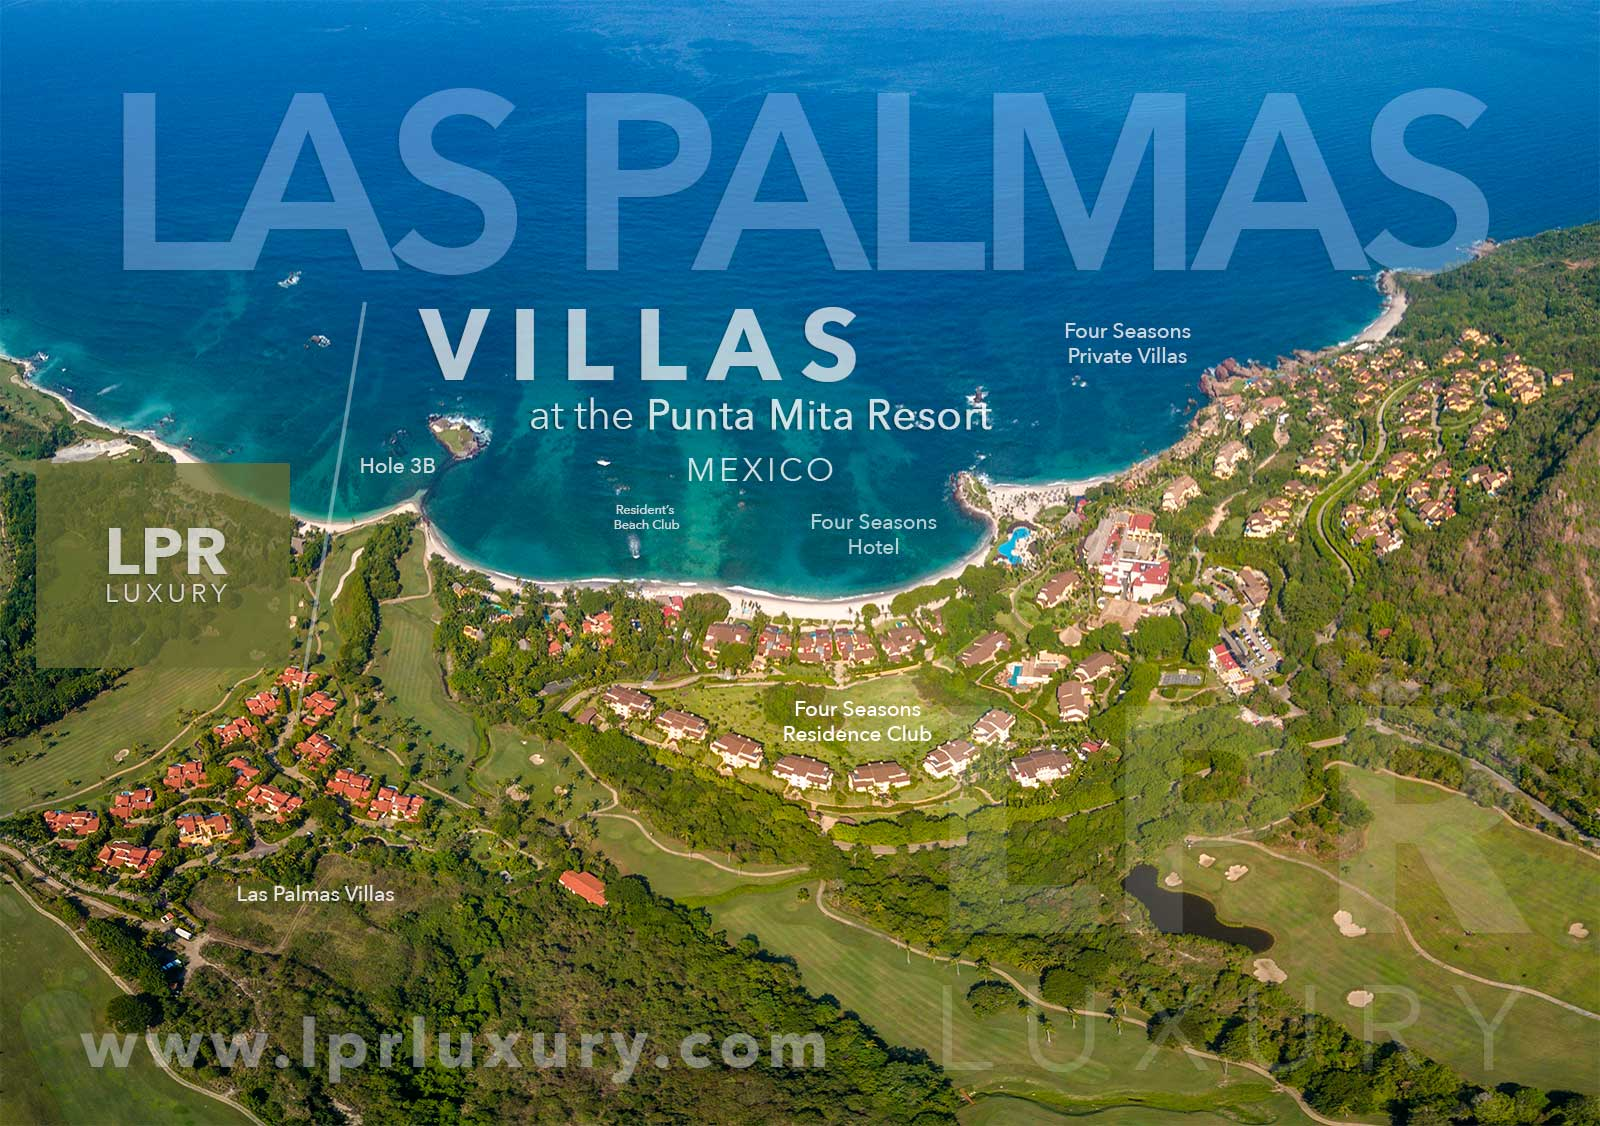 Las Palmas Villas at the Punta Mita Resort, Riviera Nayarit, Mexico